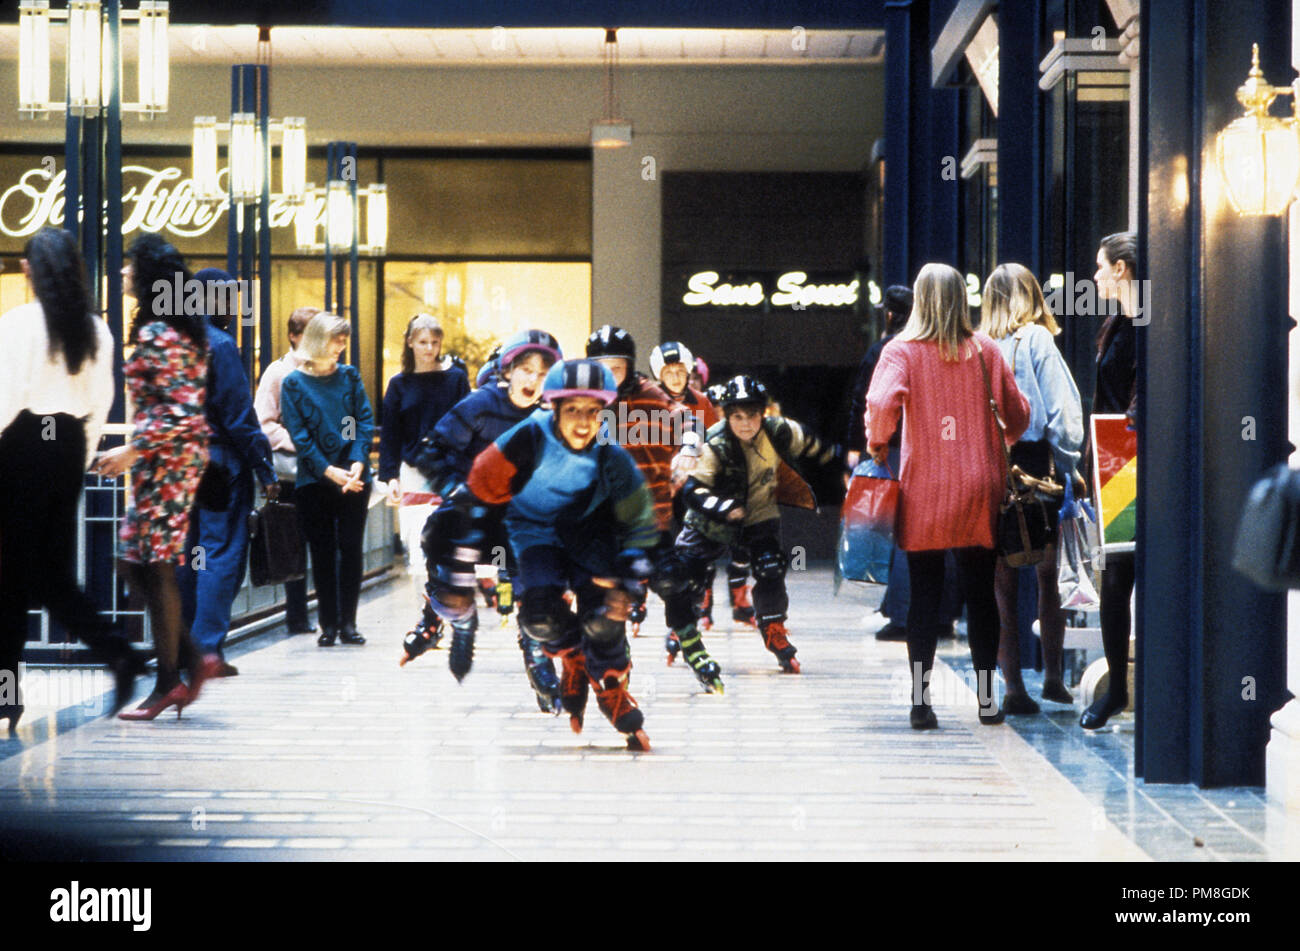 Film still or Publicity still from 'The Mighty Ducks' Emilio Estevez, Brandon Quintin Adams, Joshua Jackson, Elden Henson, Aaron Schwartz, Jane Plank  © 1992 Walt Disney Pictures Photo Credit: Deborah Croswell  All Rights Reserved   File Reference # 31487_297THA  For Editorial Use Only - Stock Image